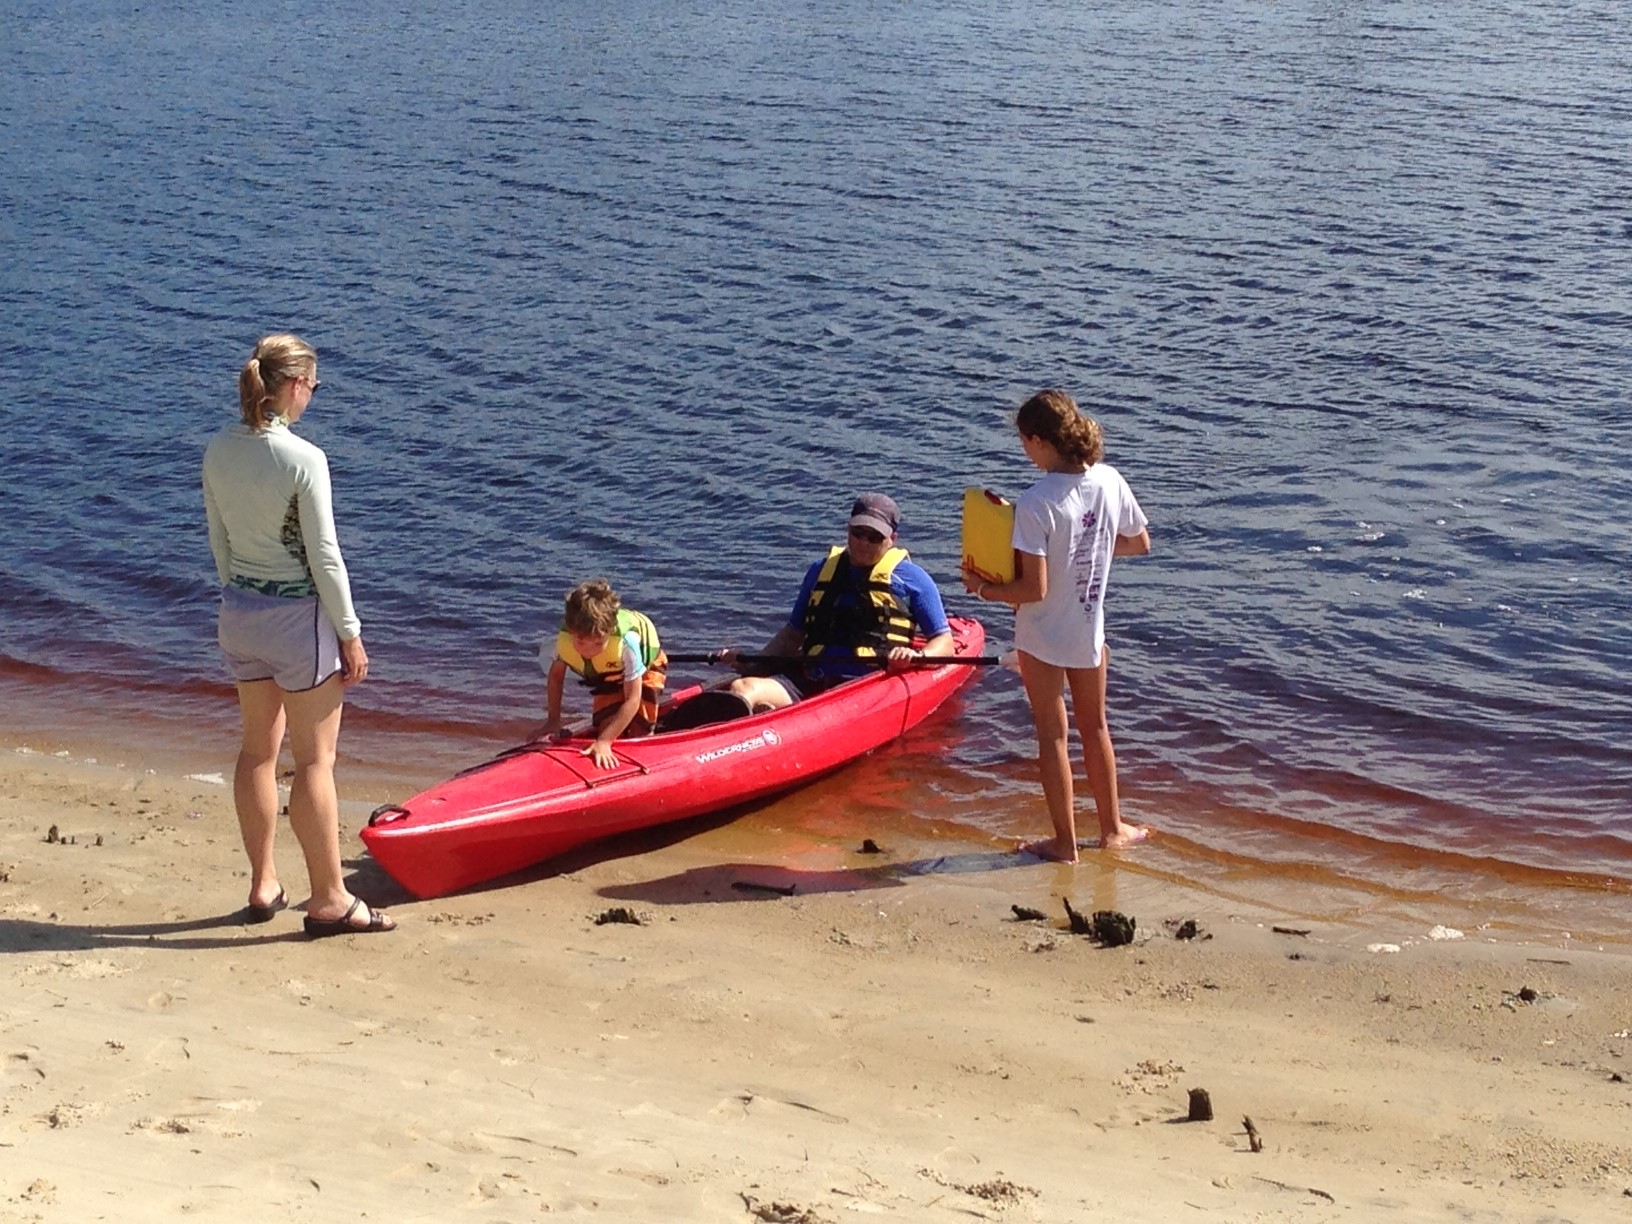 Kayaking is a must-do activity when the grandchildren visit St. James